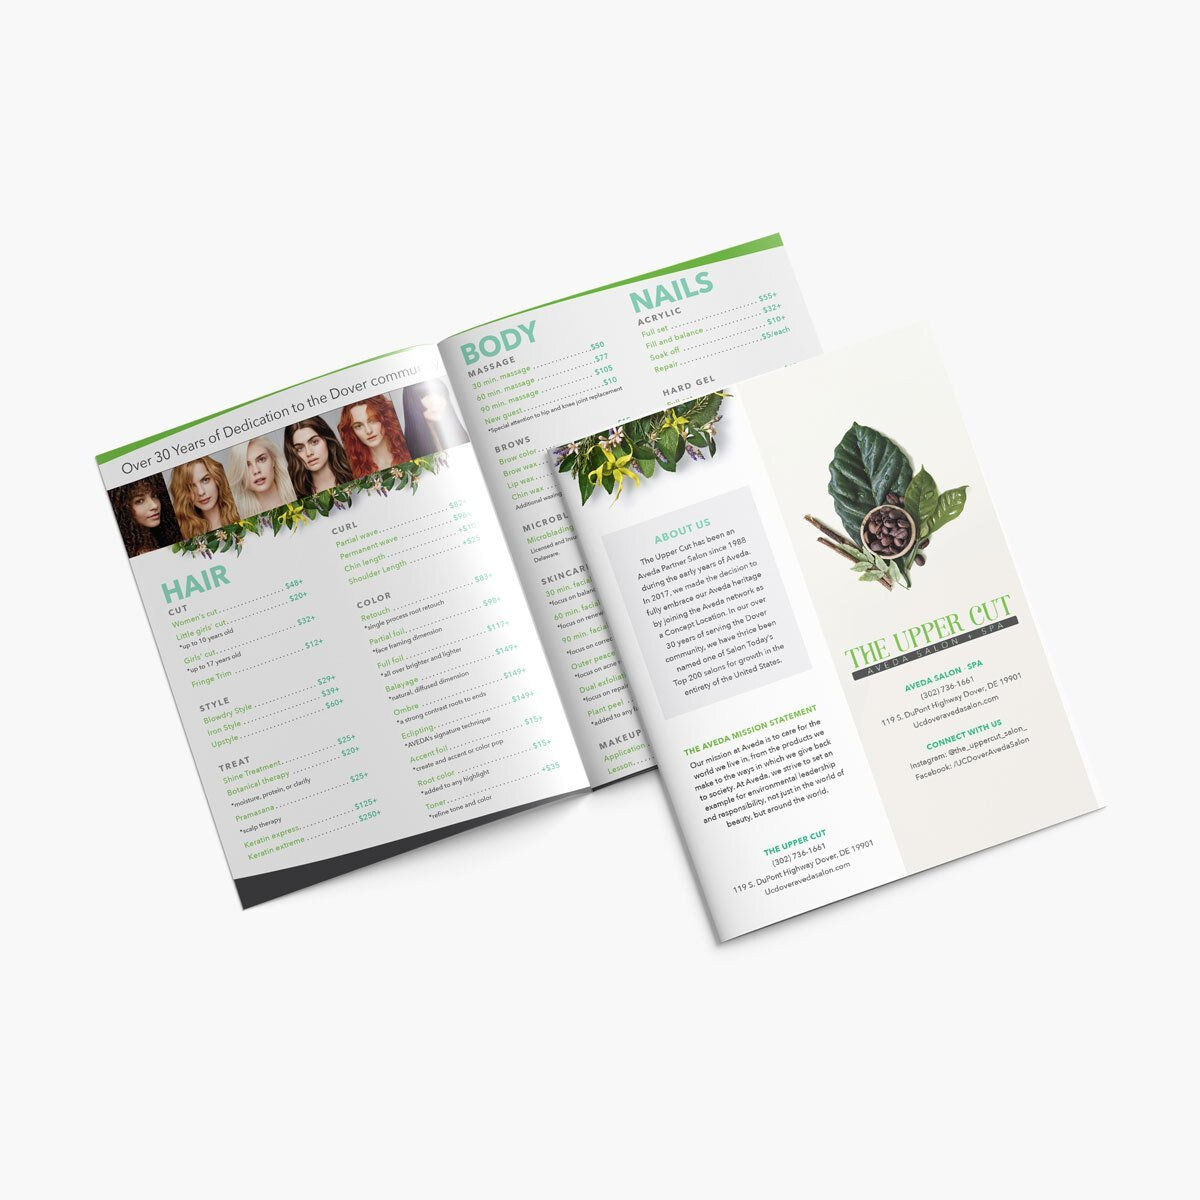 Hair salon pricing brochure design from BrandSwan, a Delaware branding agency